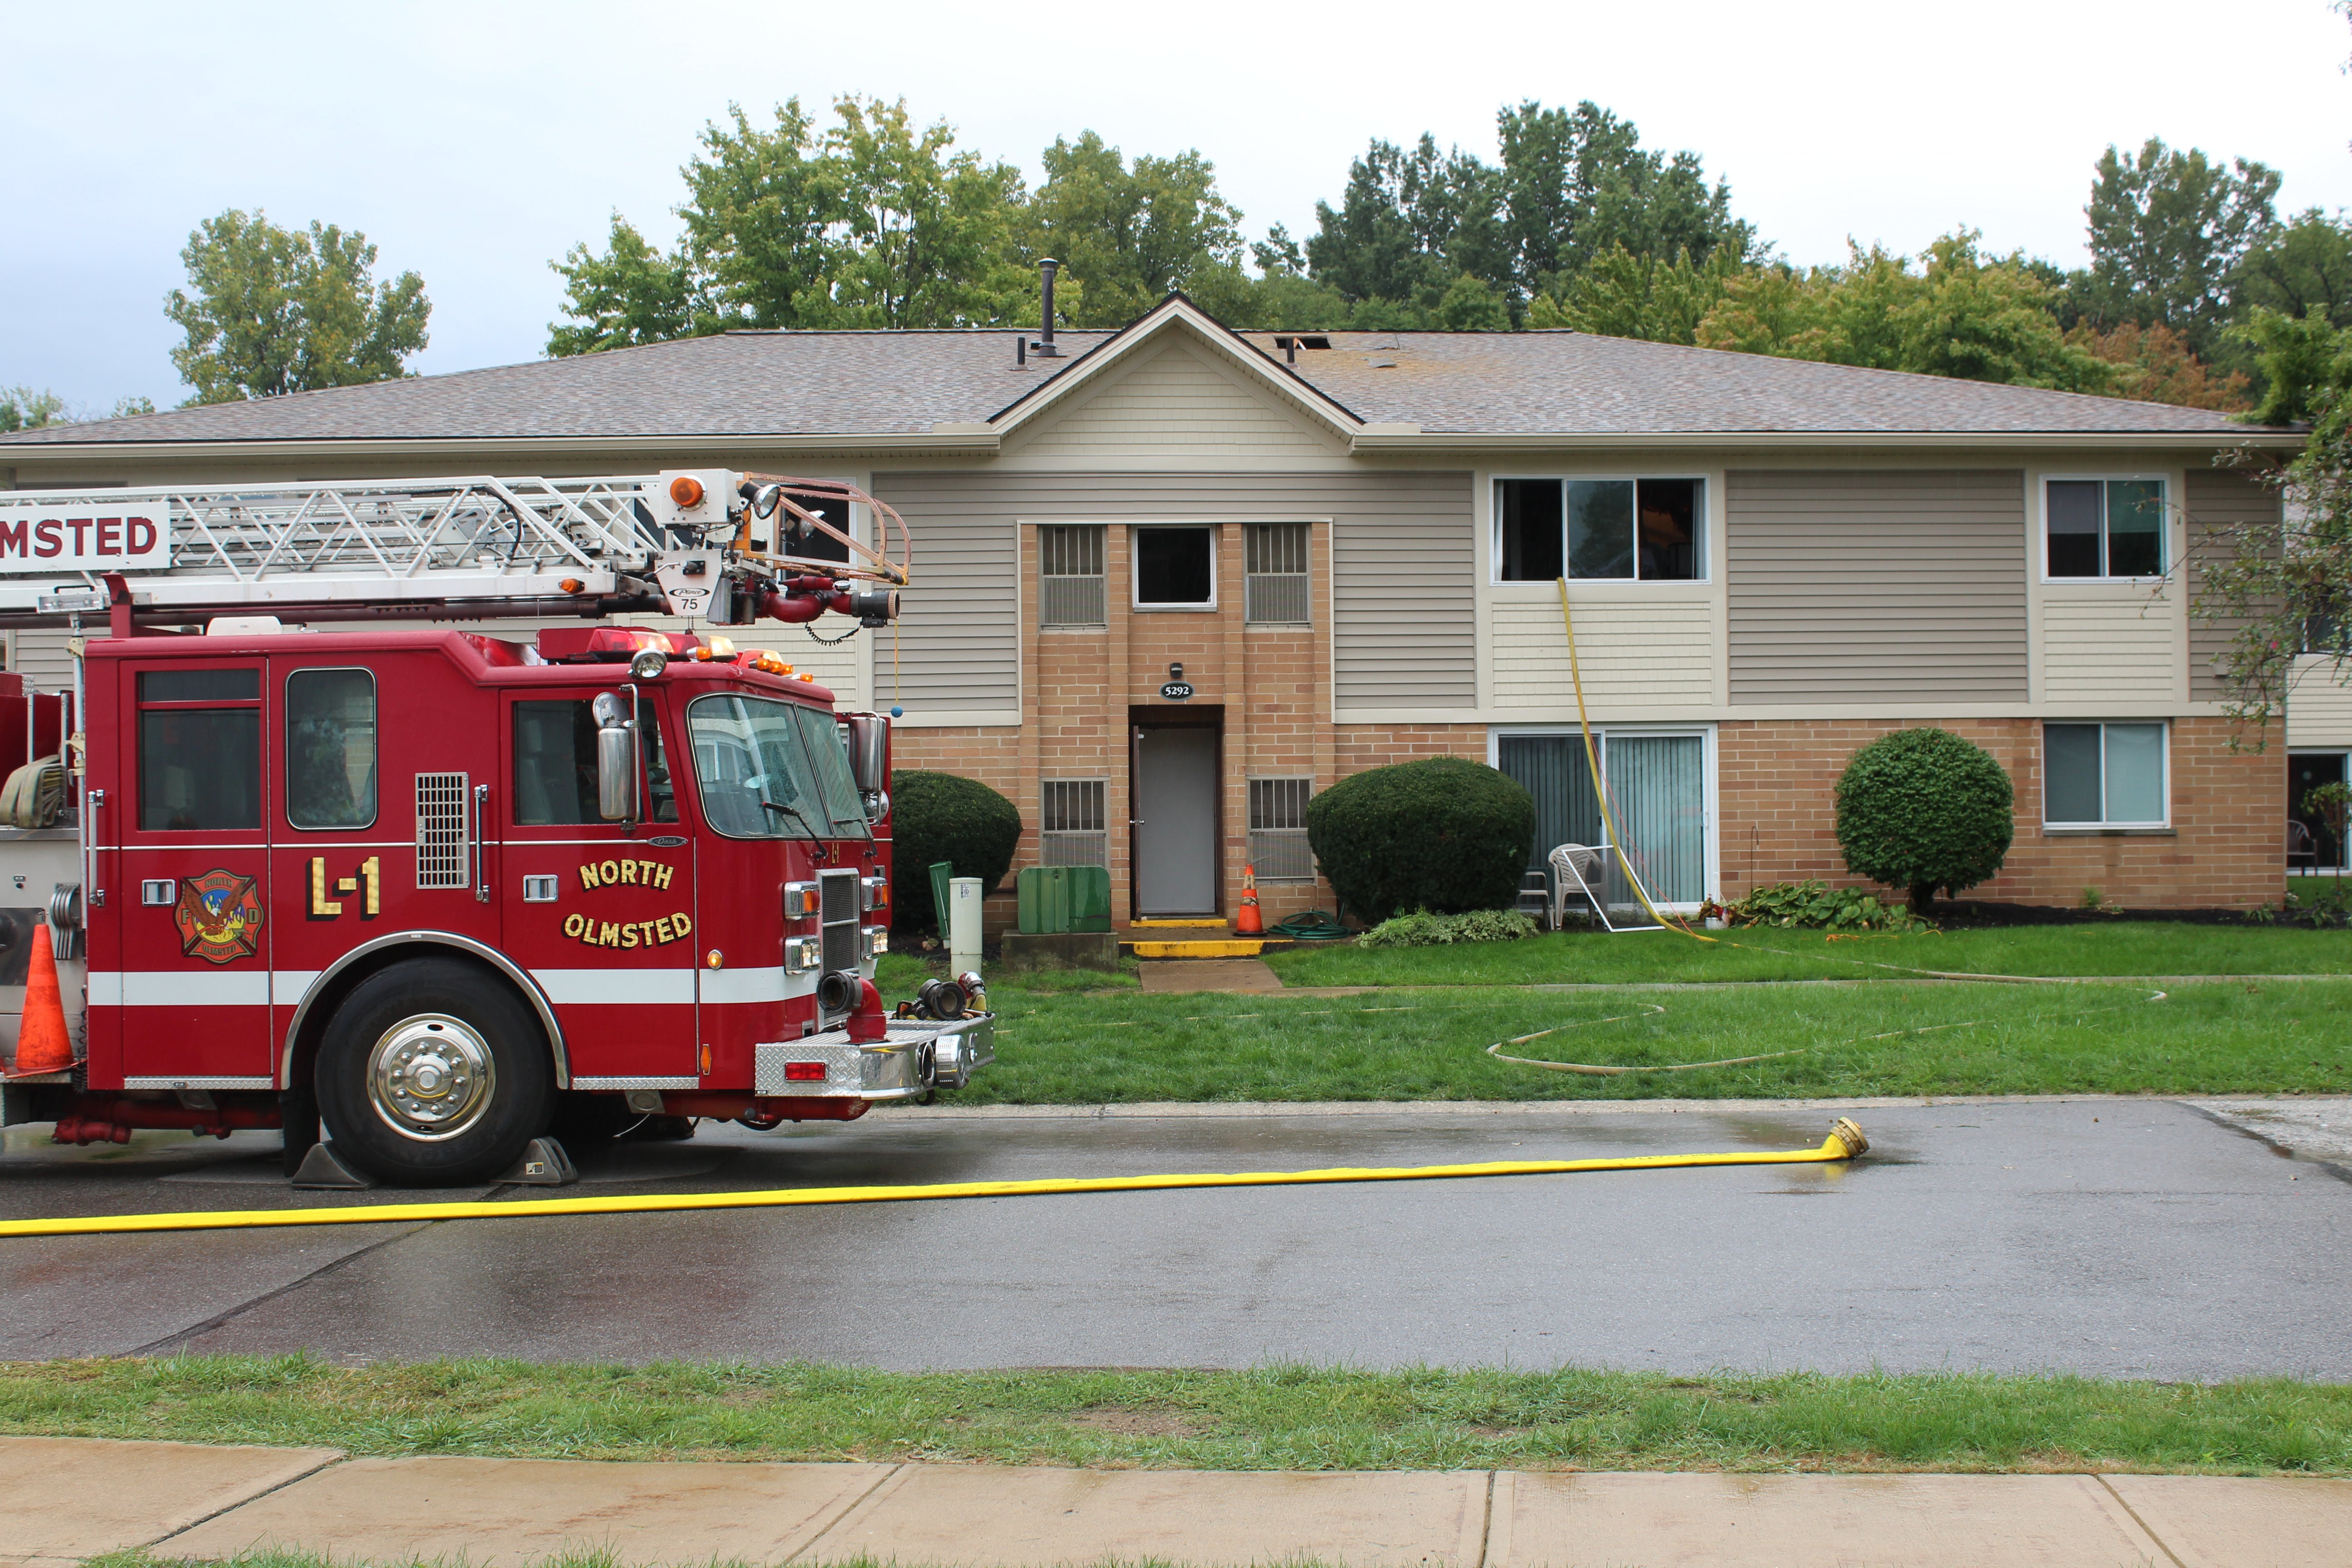 north-olmsted-ohio-fire-department-responding-to-apartment-fire-09-26-16